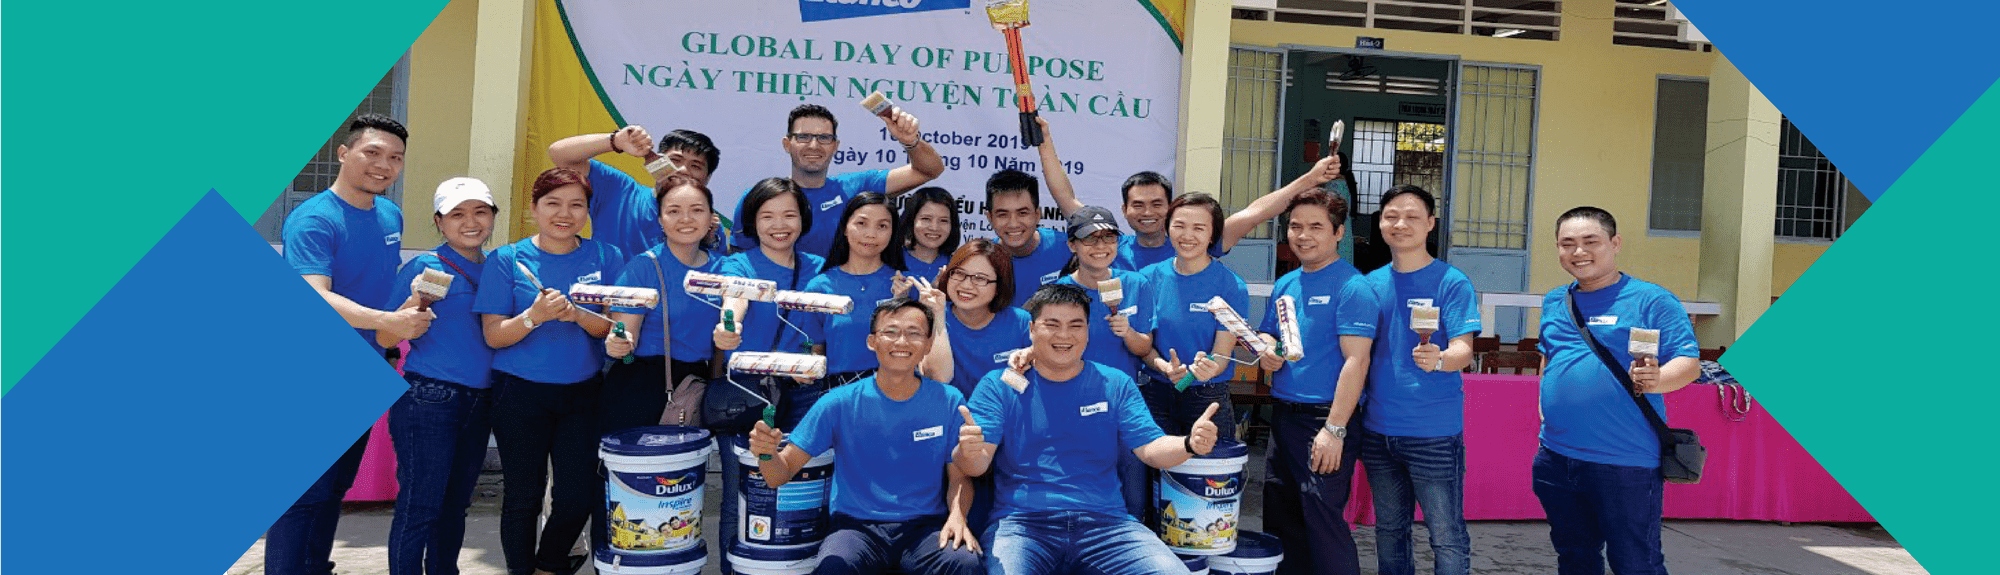 A group of Elanco employees working Global Day of Purpose